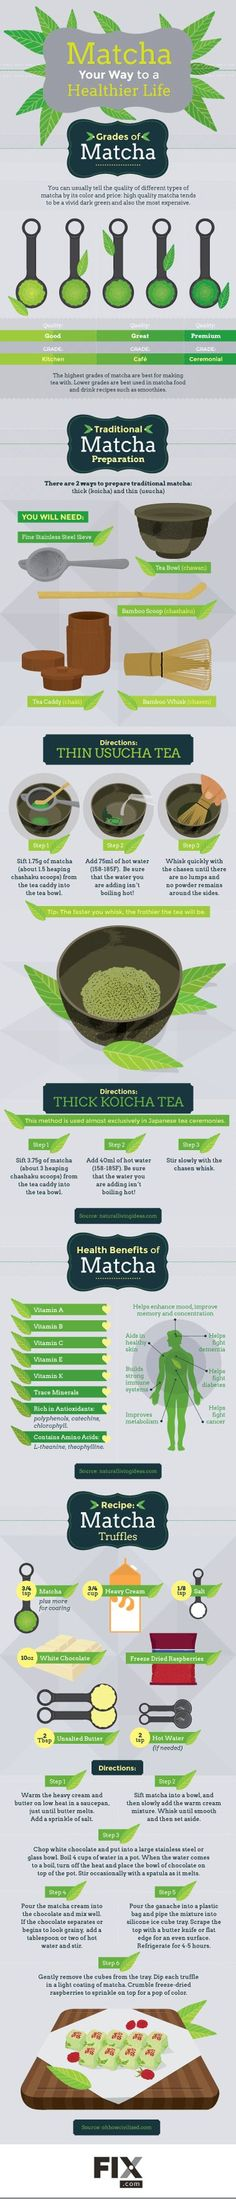 If you are interested in the health benefits of matcha tea, but don't enjoy hot drinks, why not make a smoothie? Here are 4 matcha green tea smoothies to try. Weight Watcher Desserts, Matcha Benefits, Tea Benefits, Detox Drinks, Healthy Drinks, Smoothies, Japanese Diet, Japanese Cake, Carb Cycling Diet